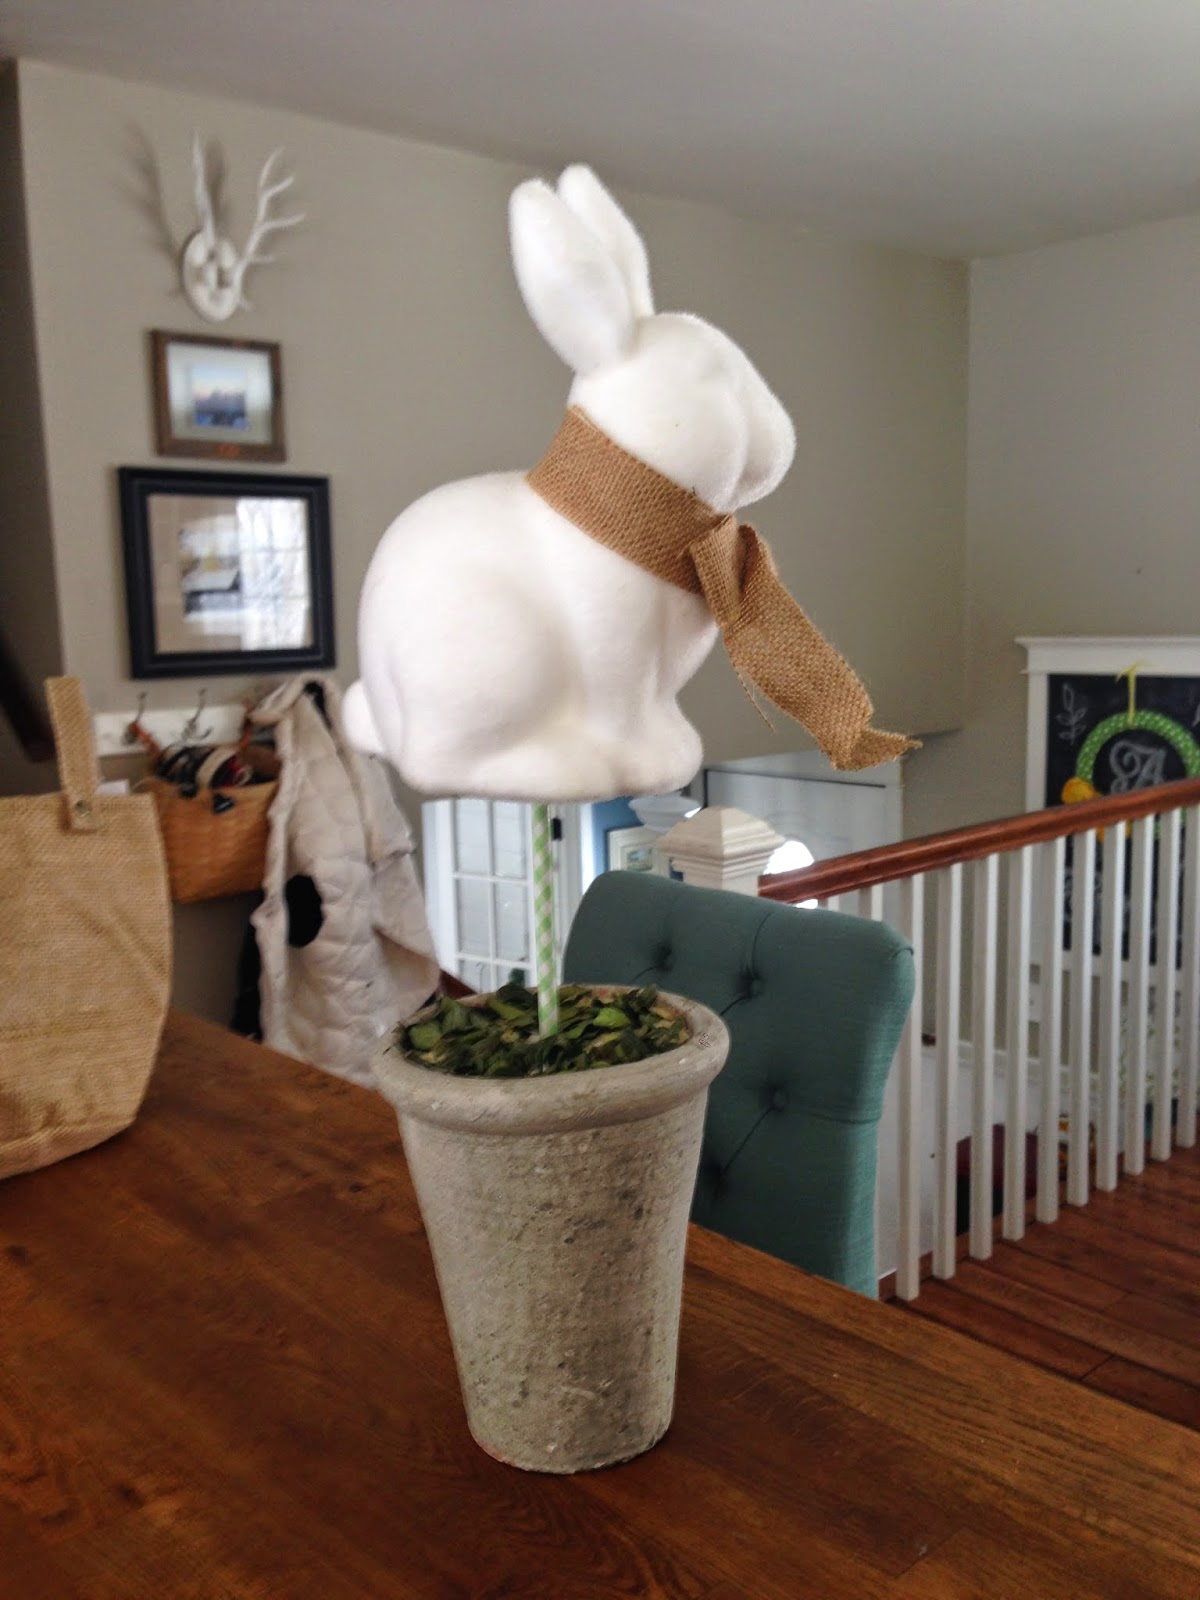 Target Dollar Spot bunny made into a topiary for Easter decor-www.goldenboysandme.com